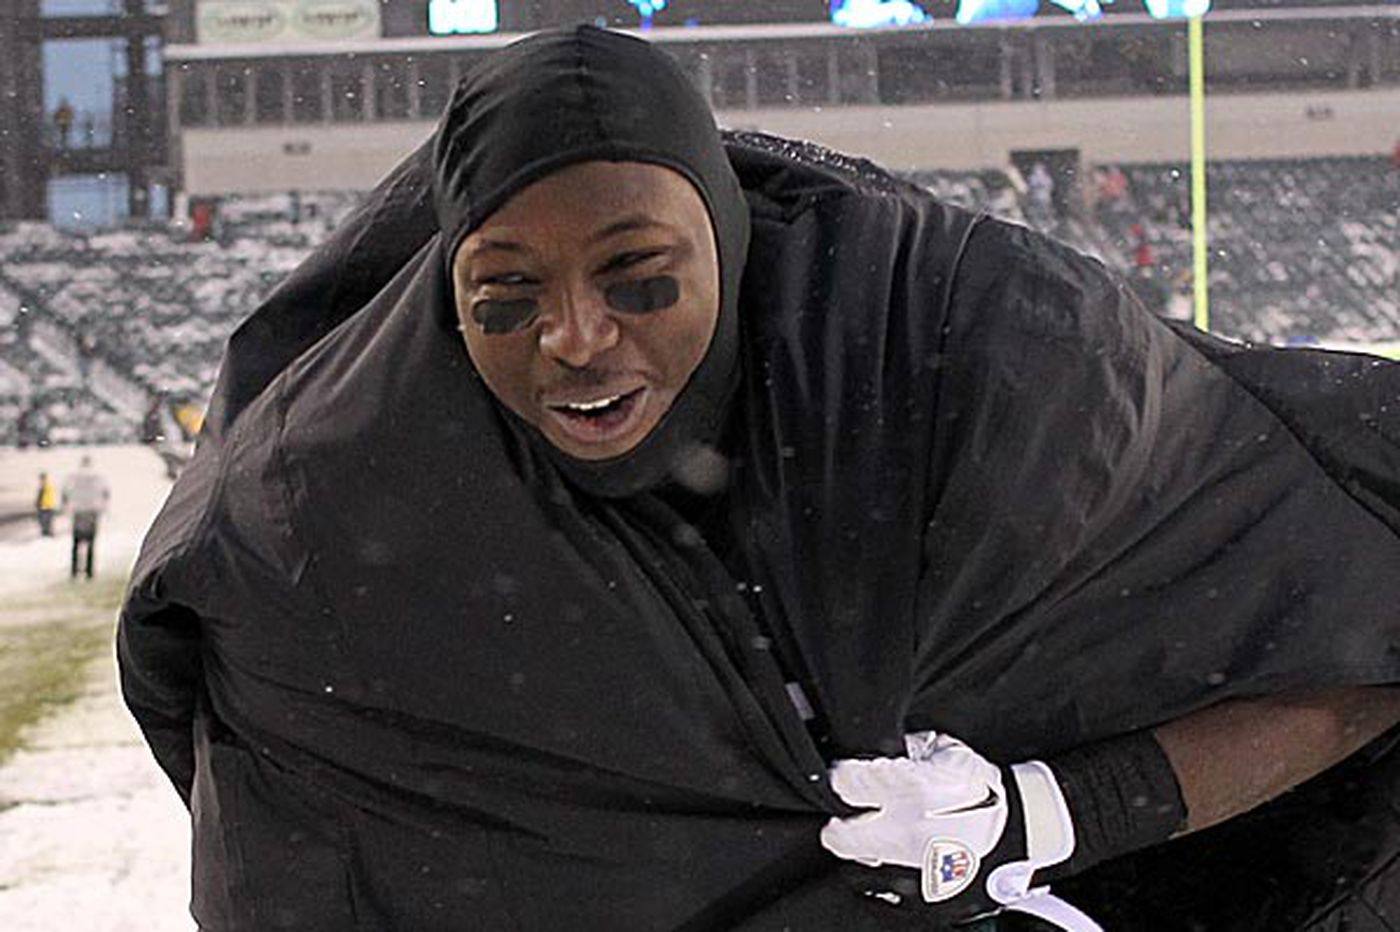 Shady's gear heads to Canton